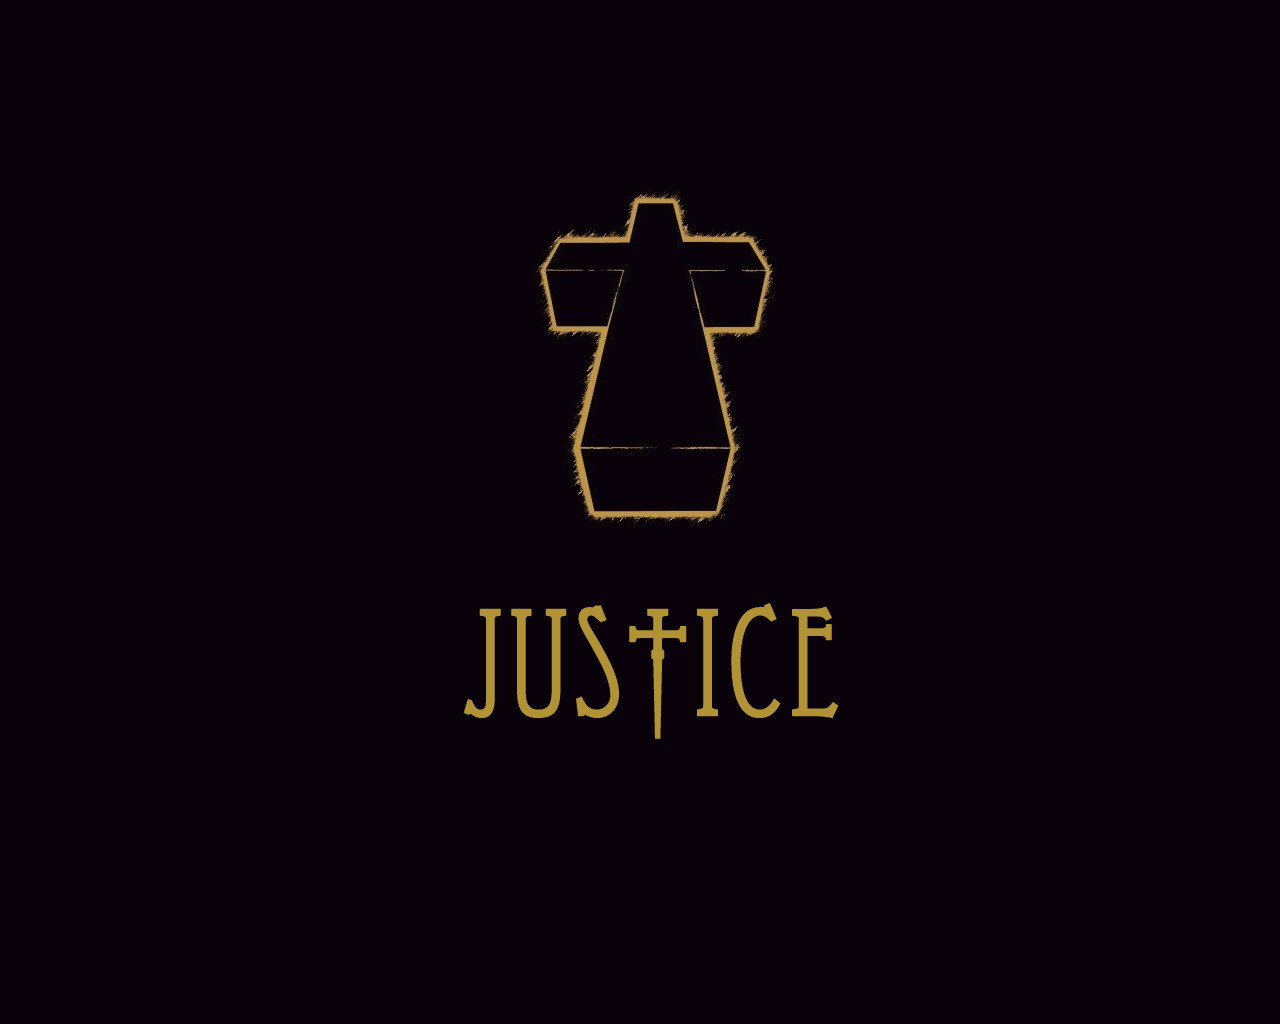 Music   Justice Wallpaper 1280x1024